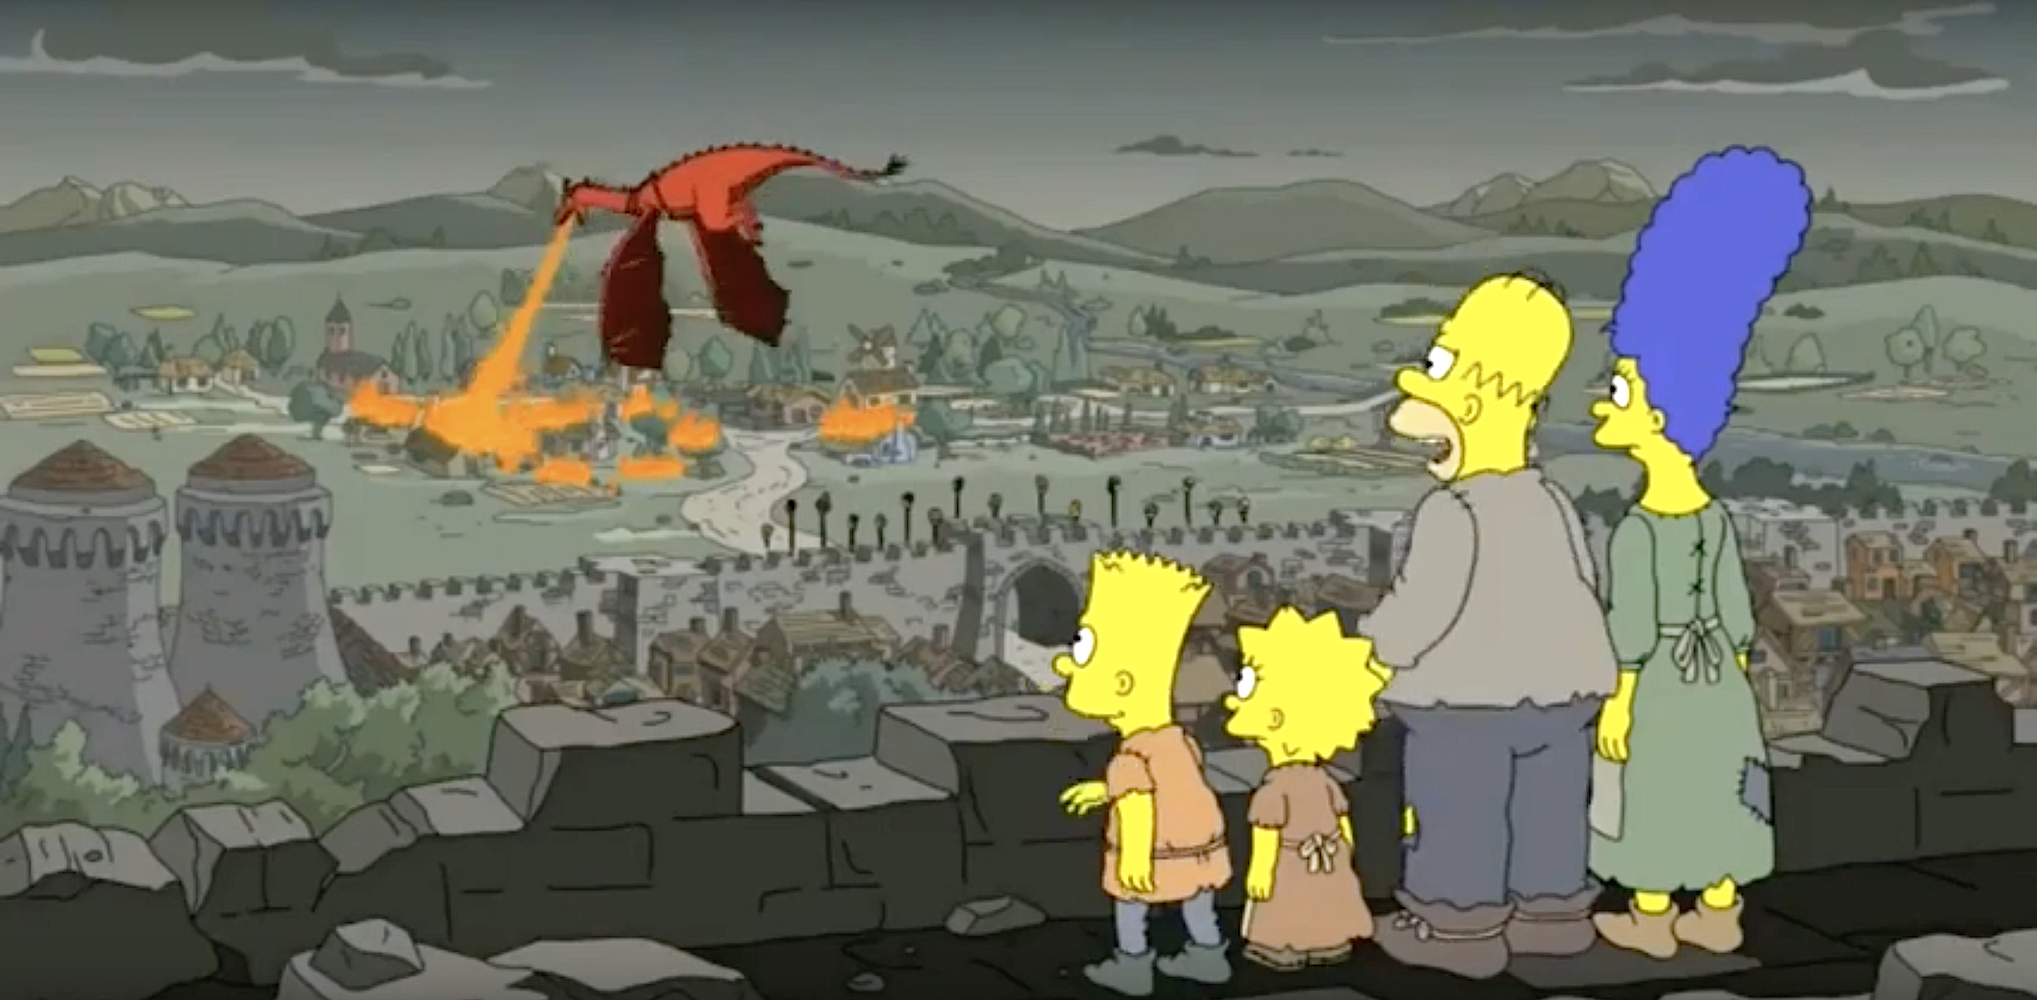 The Simpsons Predicted the Game of Thrones Daenerys Twist Along With Everyone Else